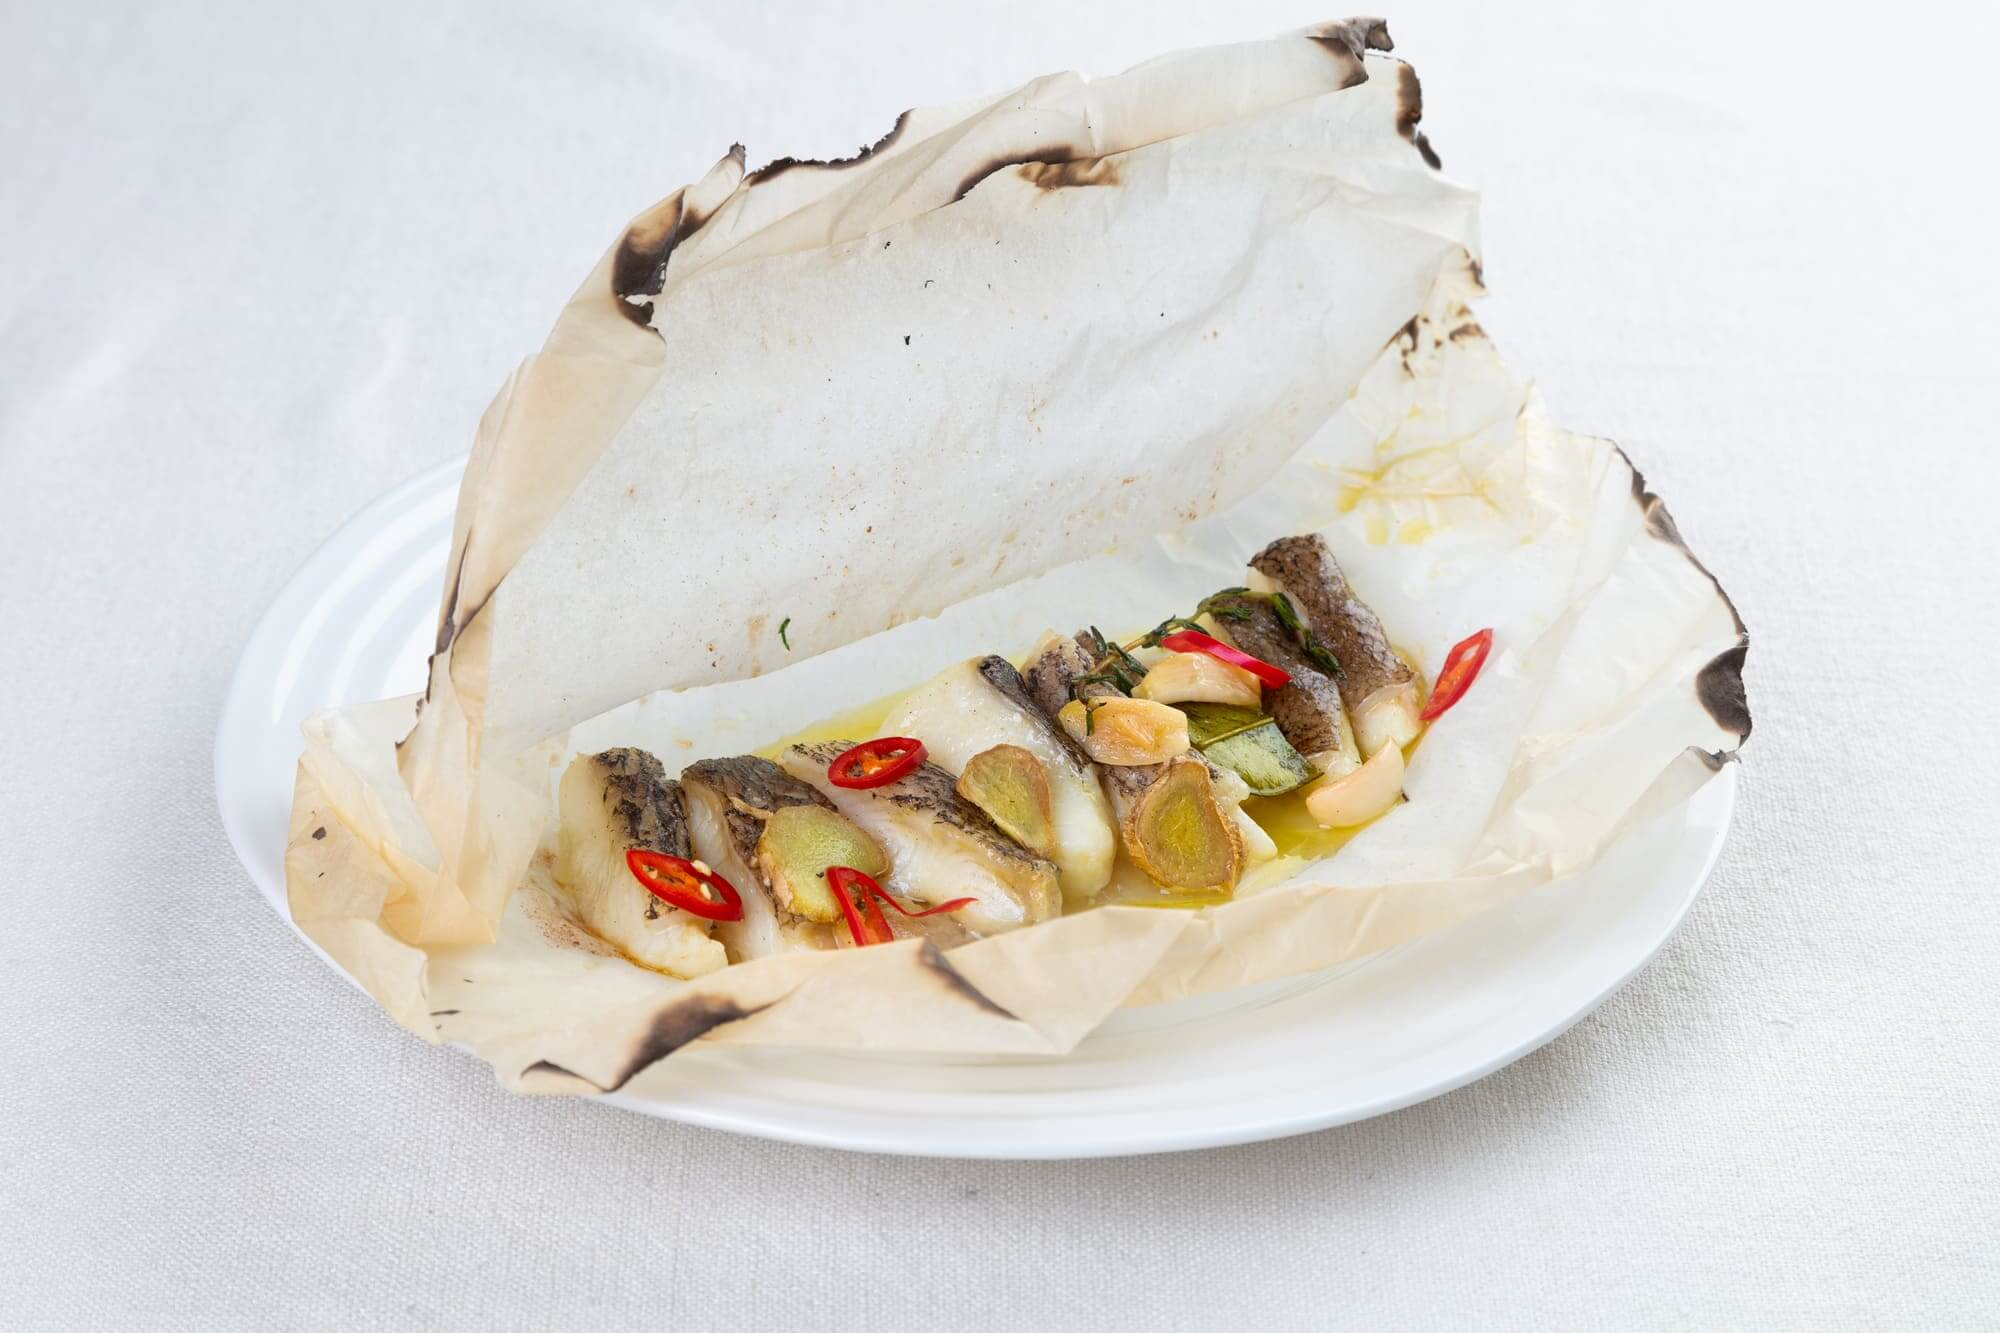 Chilean sea bass backed in parchment